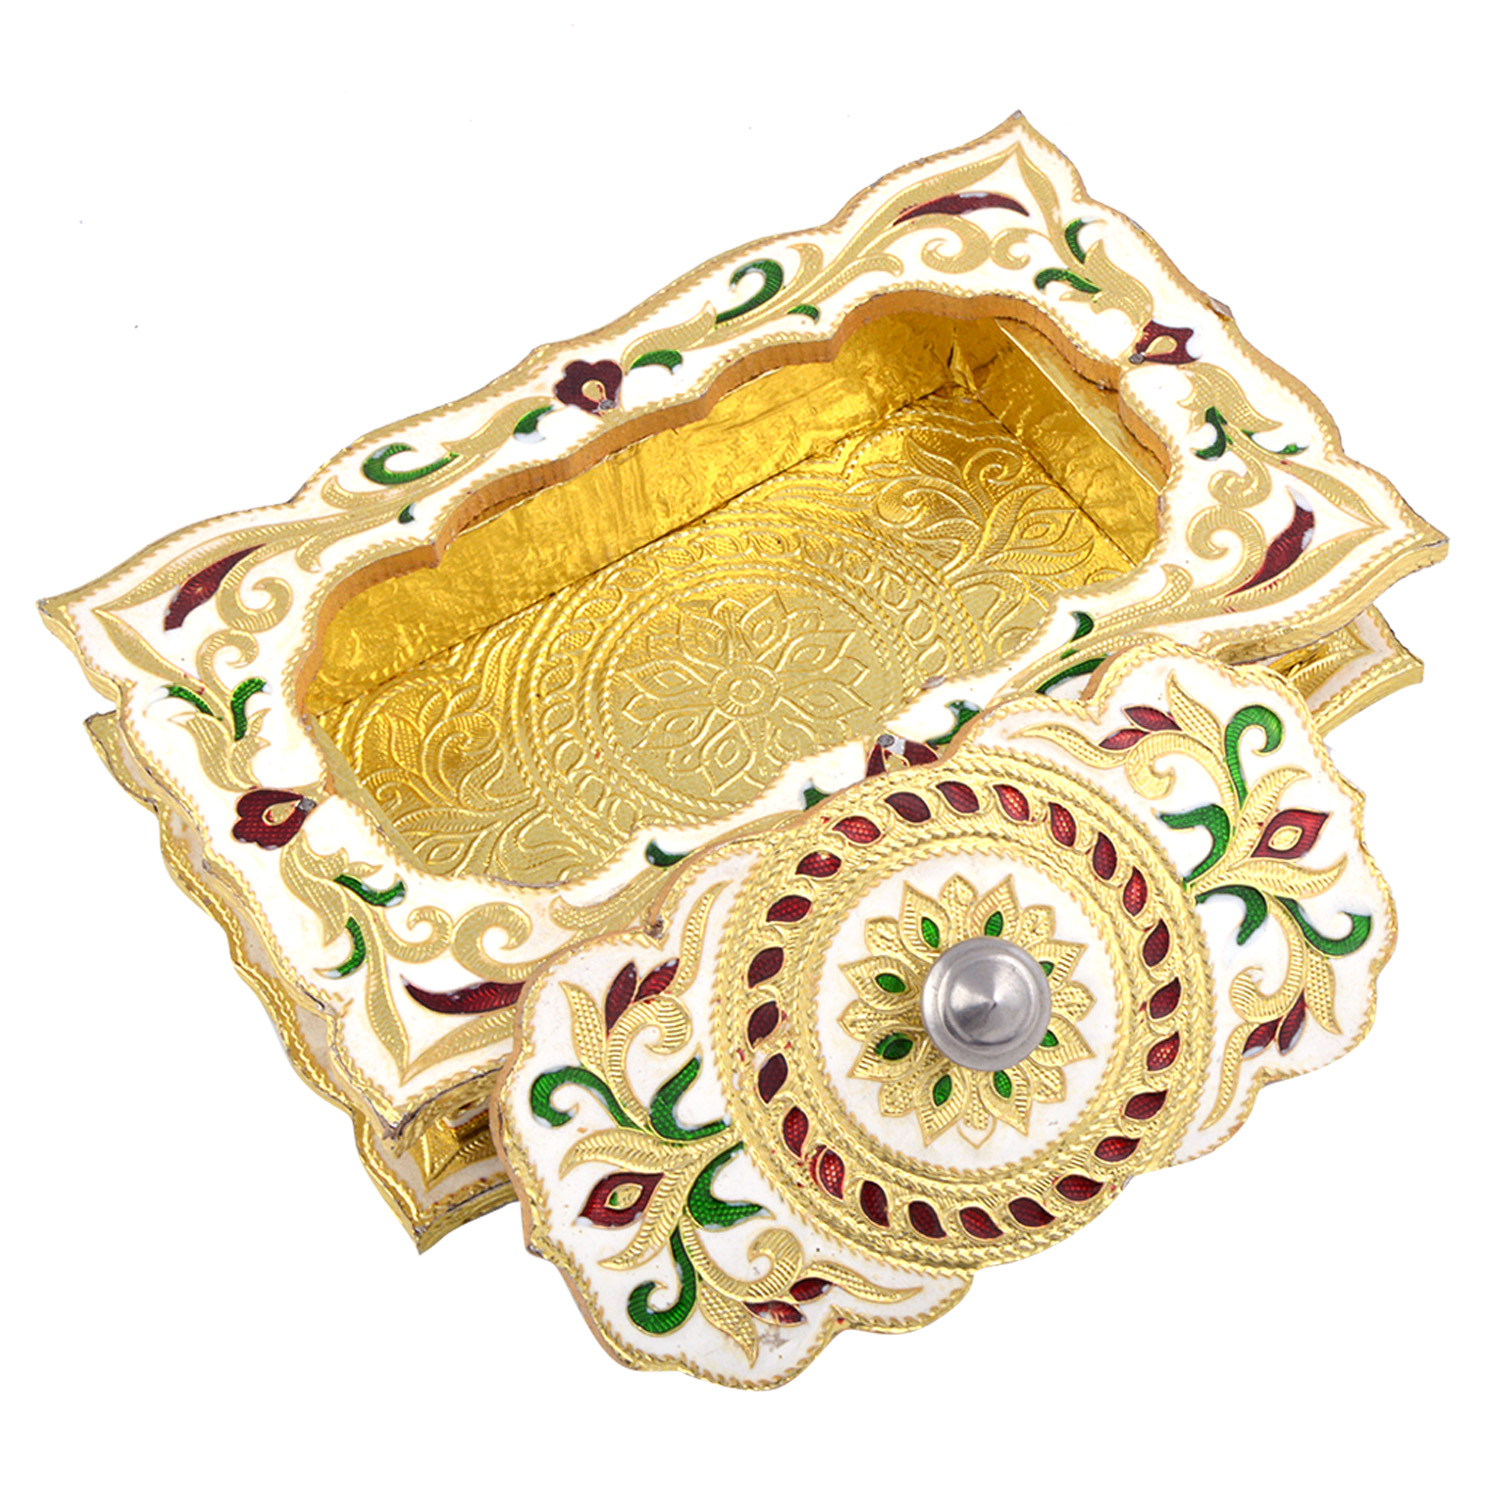 JK Handicraft Chocolate Shaped Golden White Meena Dry Fruit/ Multipurpose Box  (13cmX20cmX4cm)